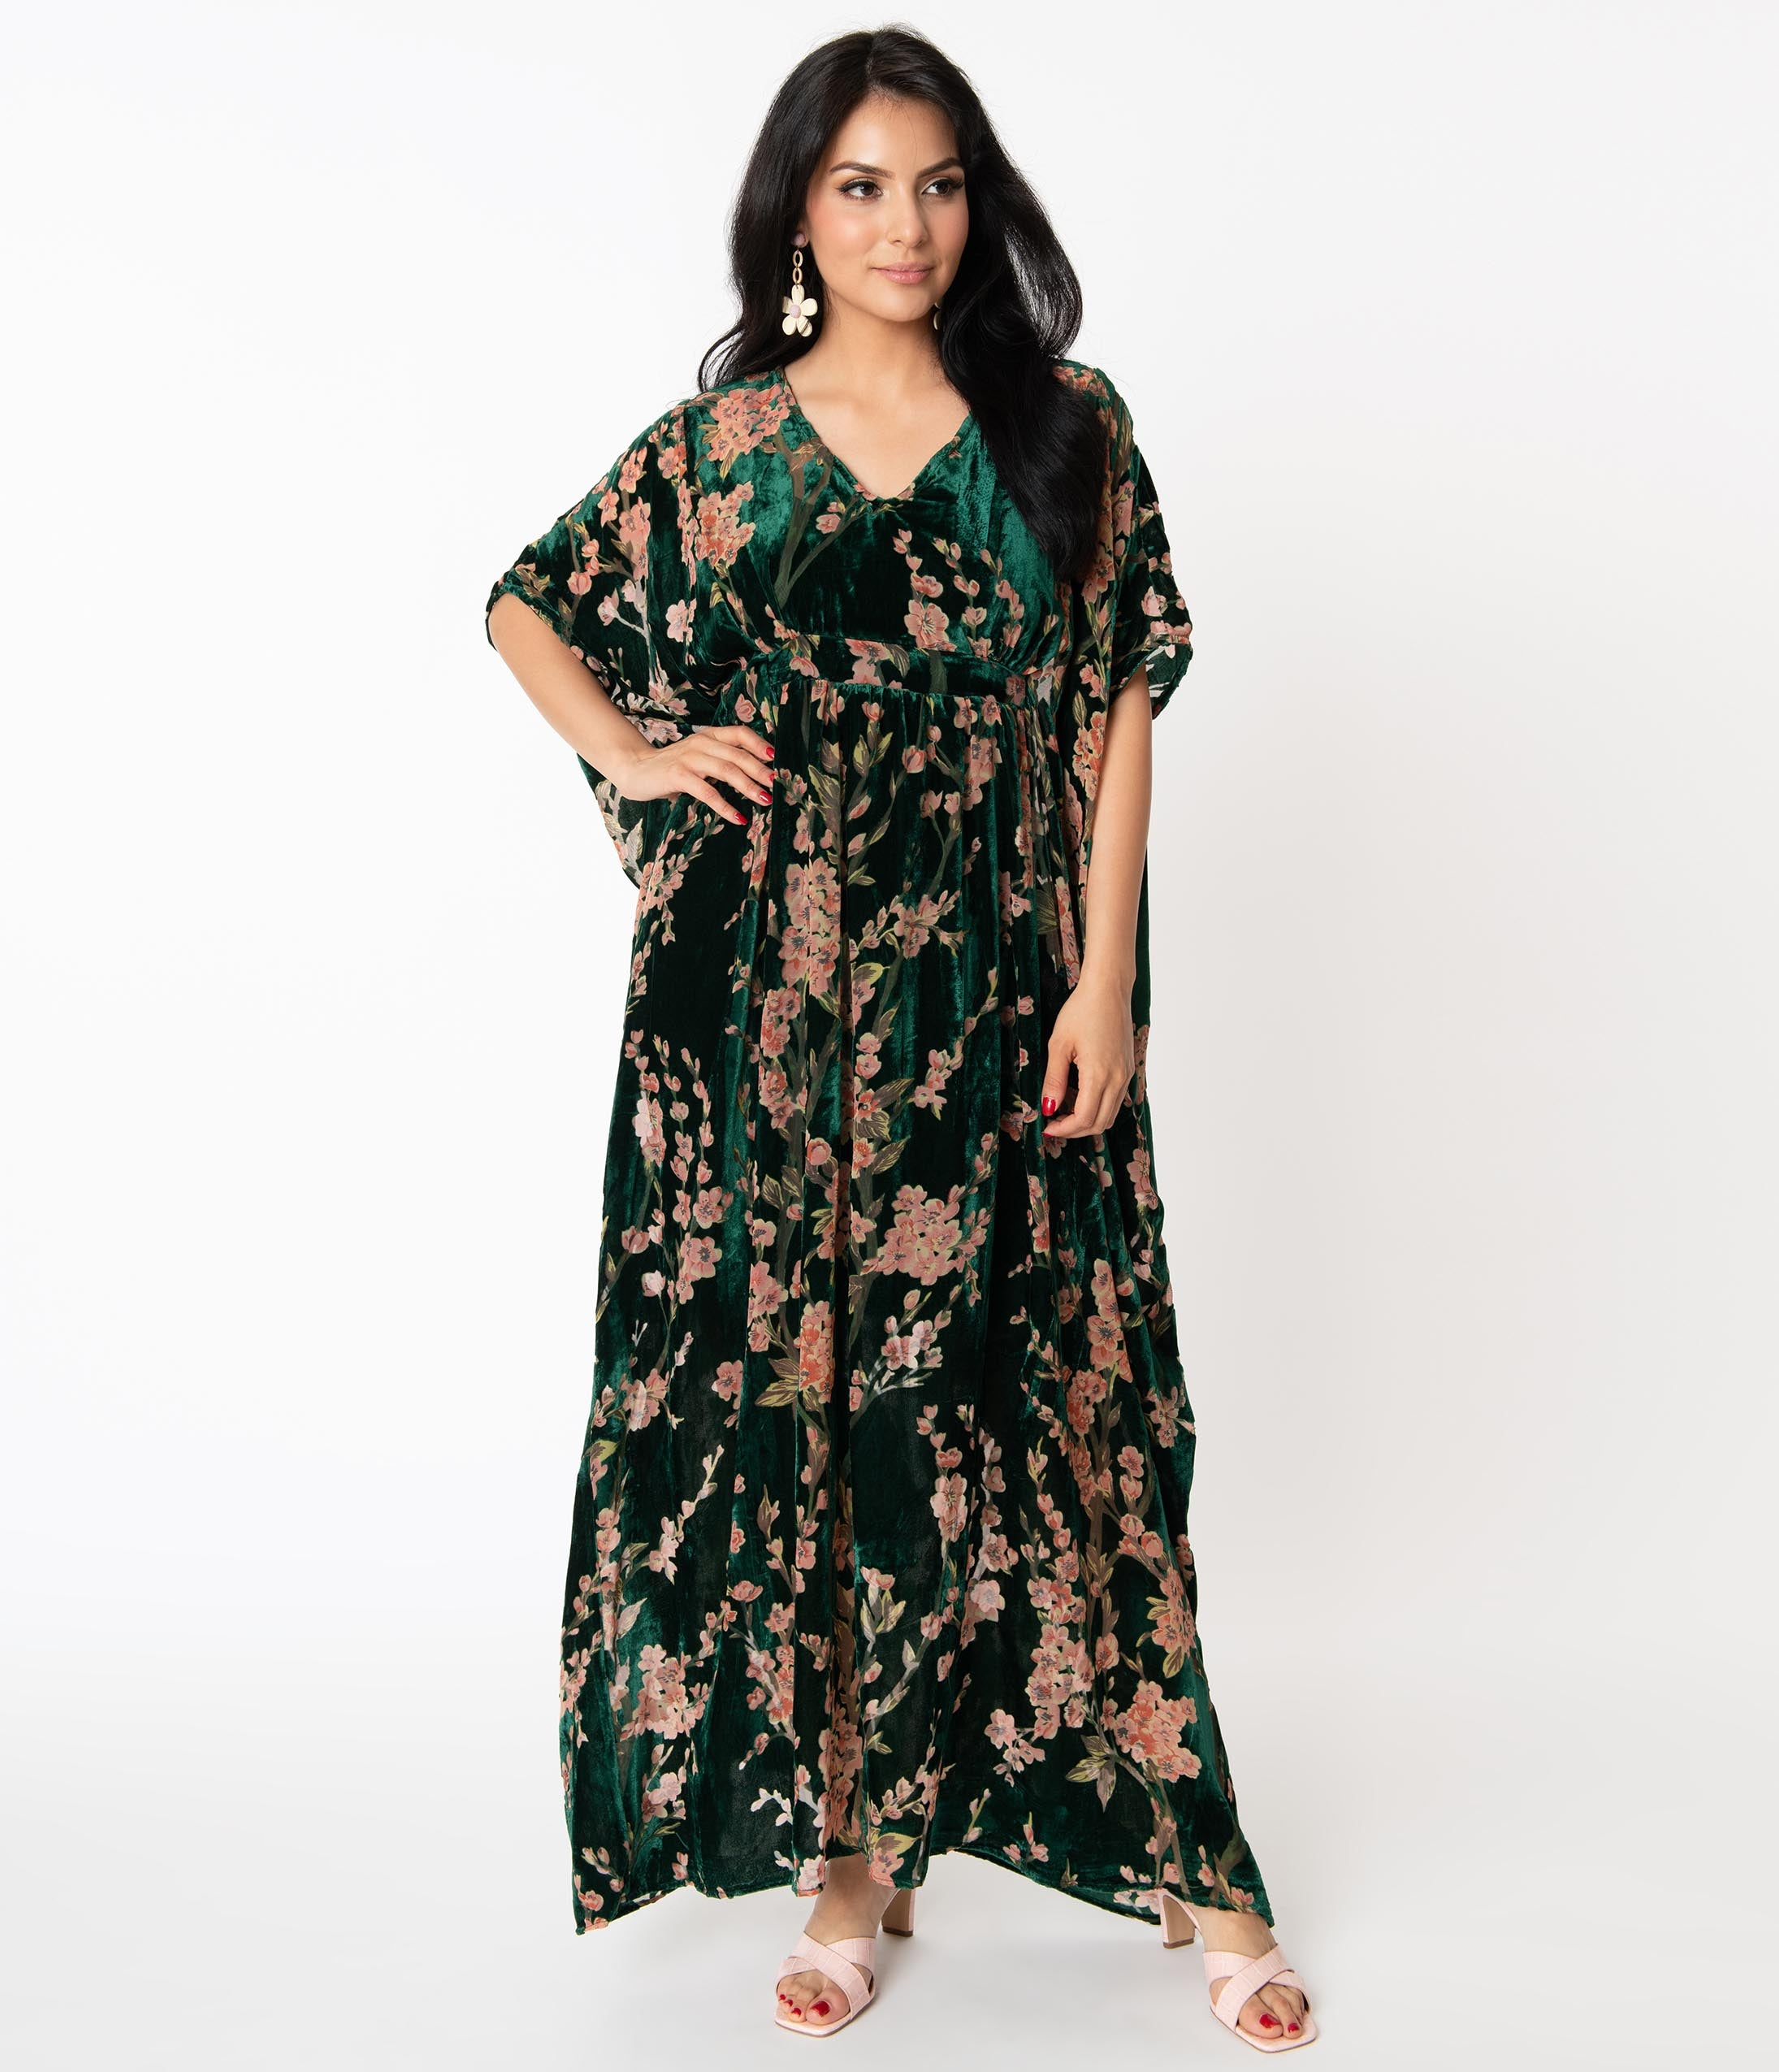 Vintage Style Dresses | Vintage Inspired Dresses Unique Vintage Emerald  Pink Floral Devore Velvet Liz Caftan Dress $110.00 AT vintagedancer.com